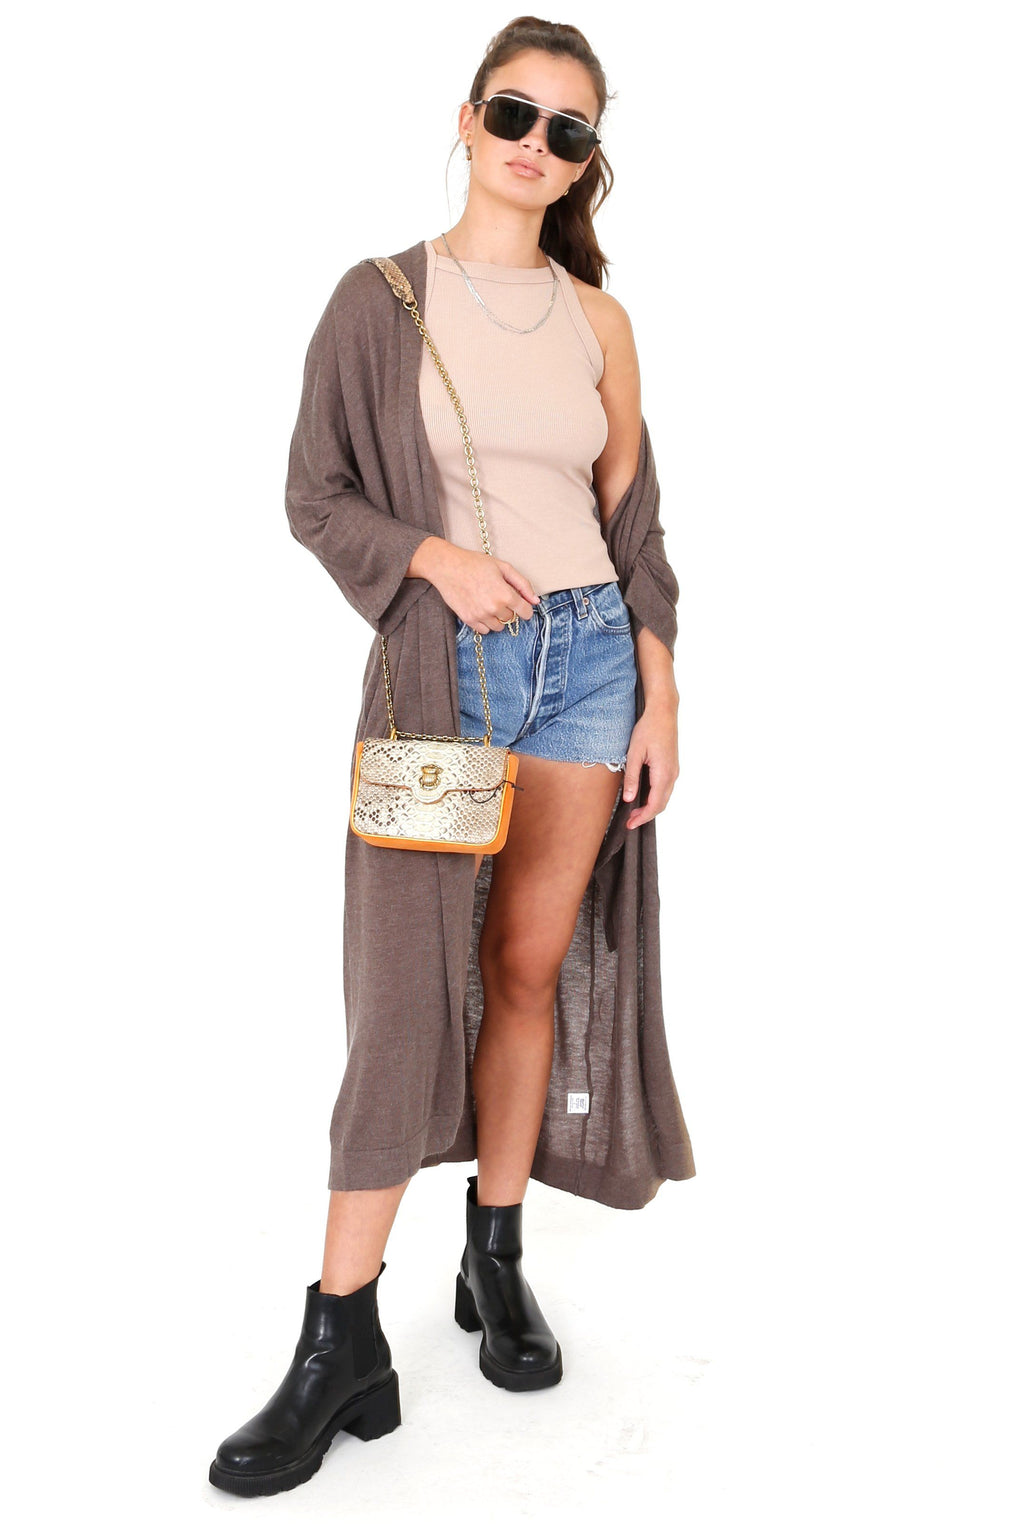 Lounge Around Longline Cardigan - Brown